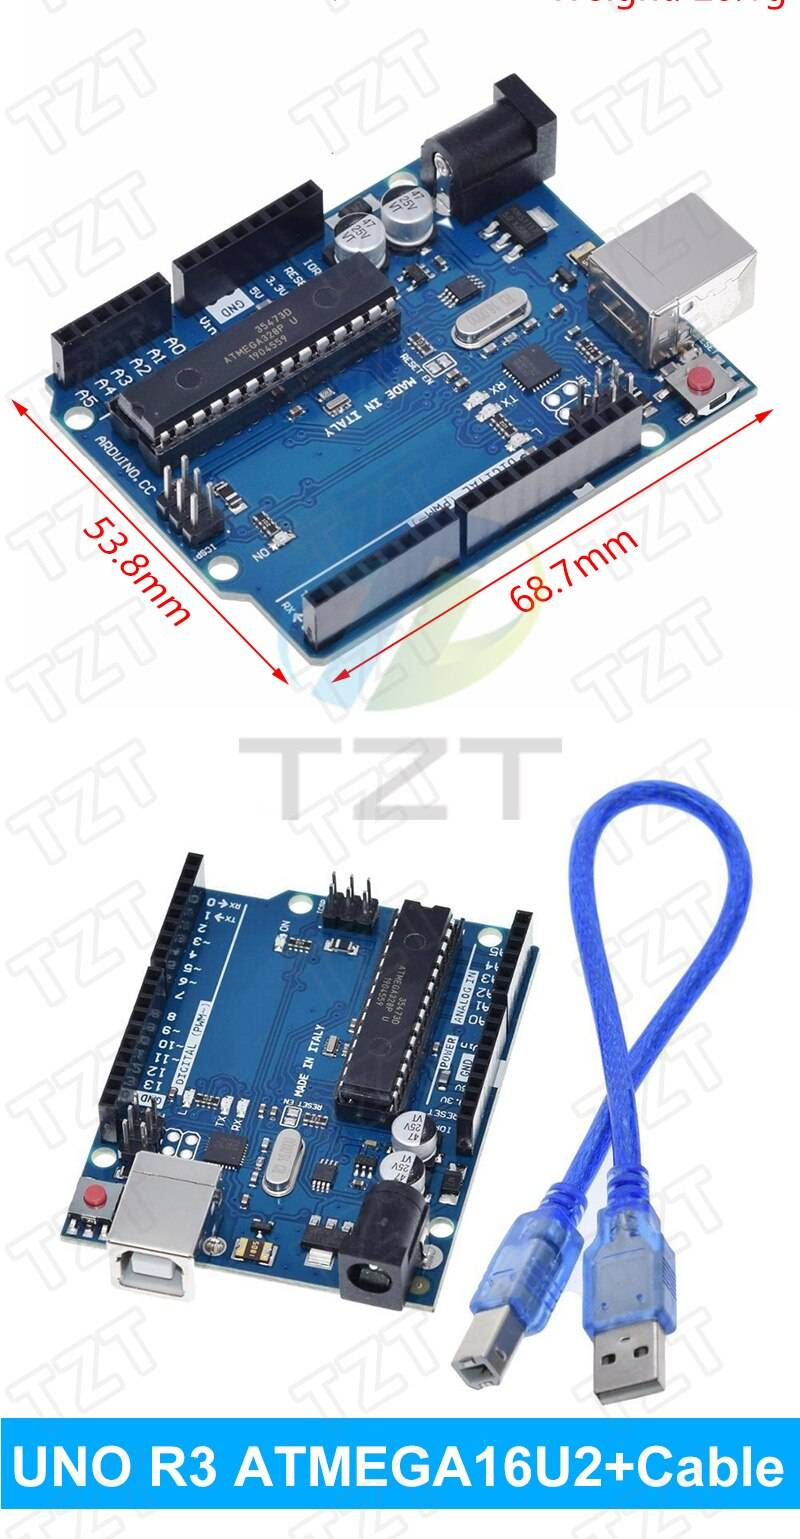 Upgraded RFID Starter Kit for Arduino UNO R3